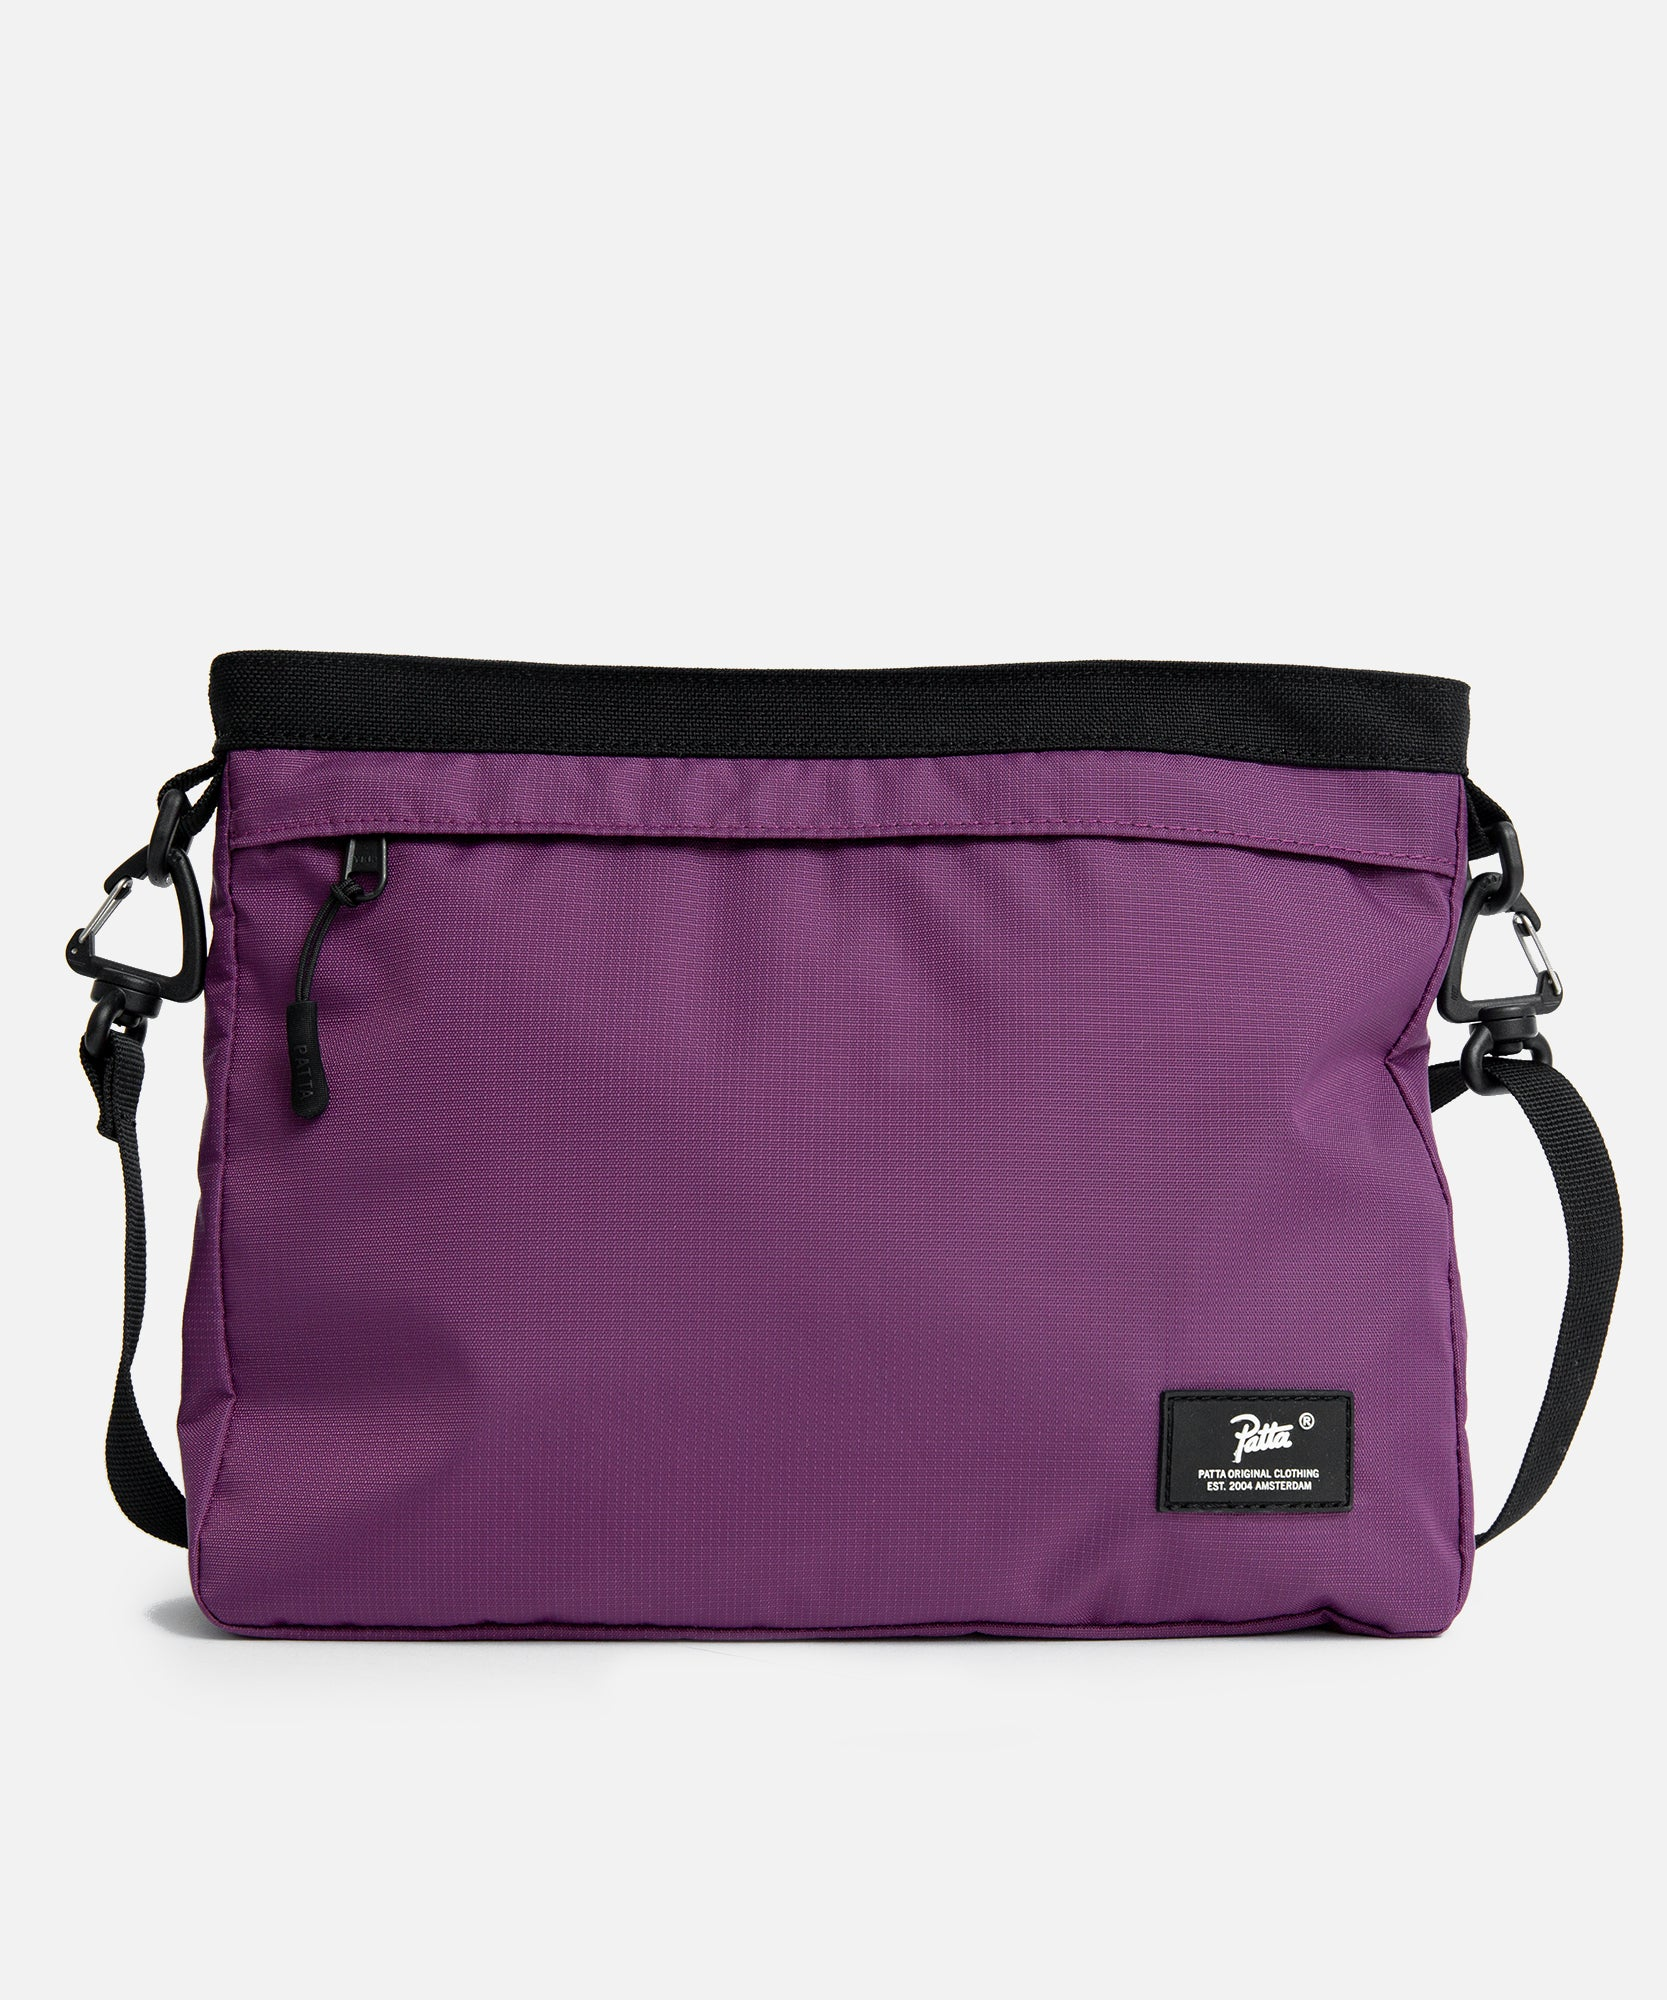 Patta Ripstop Shoulder Bag (Caspia Purple)